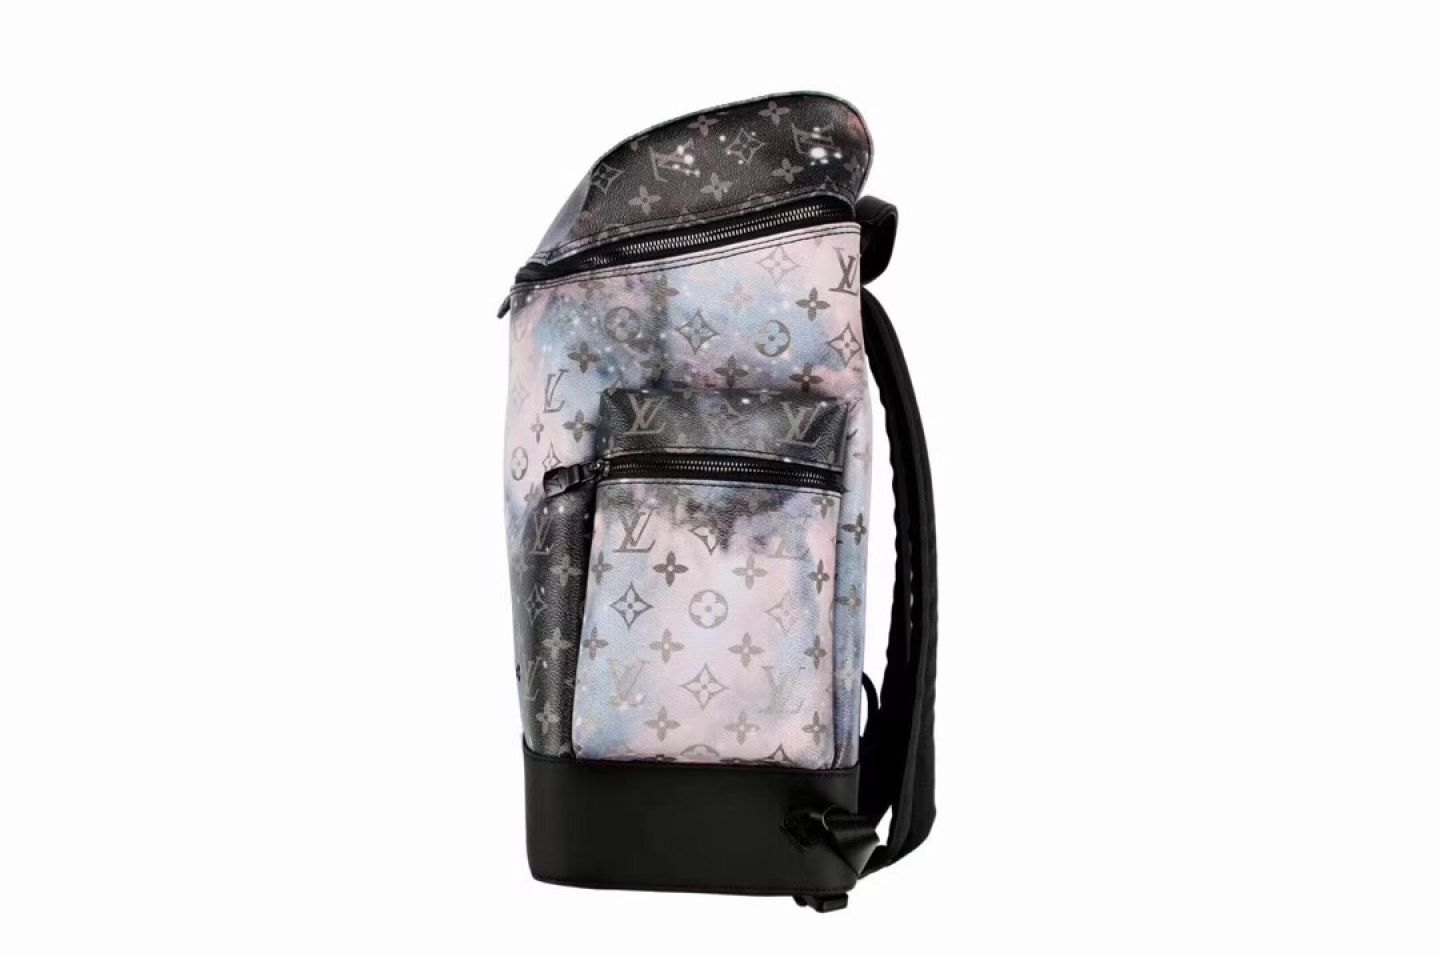 Goods Lo*is Vu*tton Alpha Backpack Monogram Galaxy Black Multicolor 3 lois_vutton_alpha_backpack_monogram_galaxy_black_multicolor__3